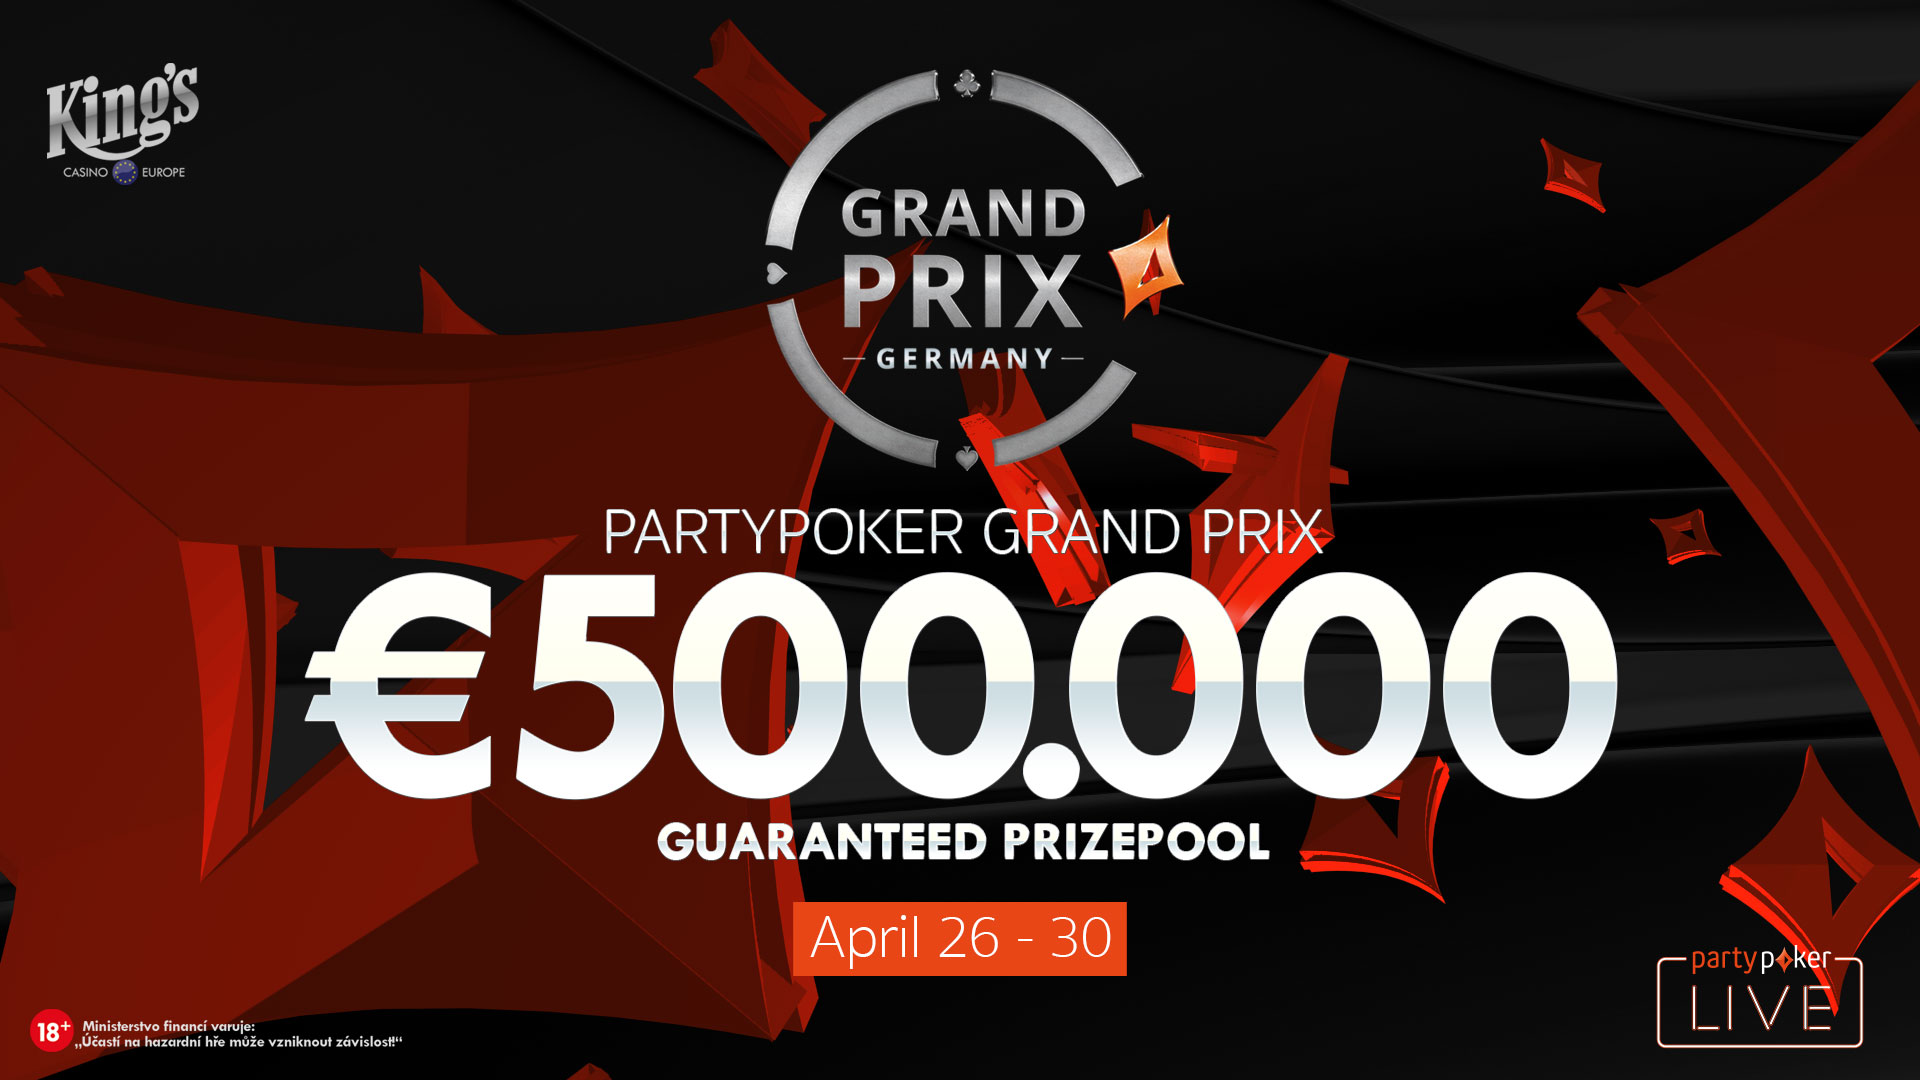 Prix Live Poker Partypoker Grand Prix Germany Pokerfirma